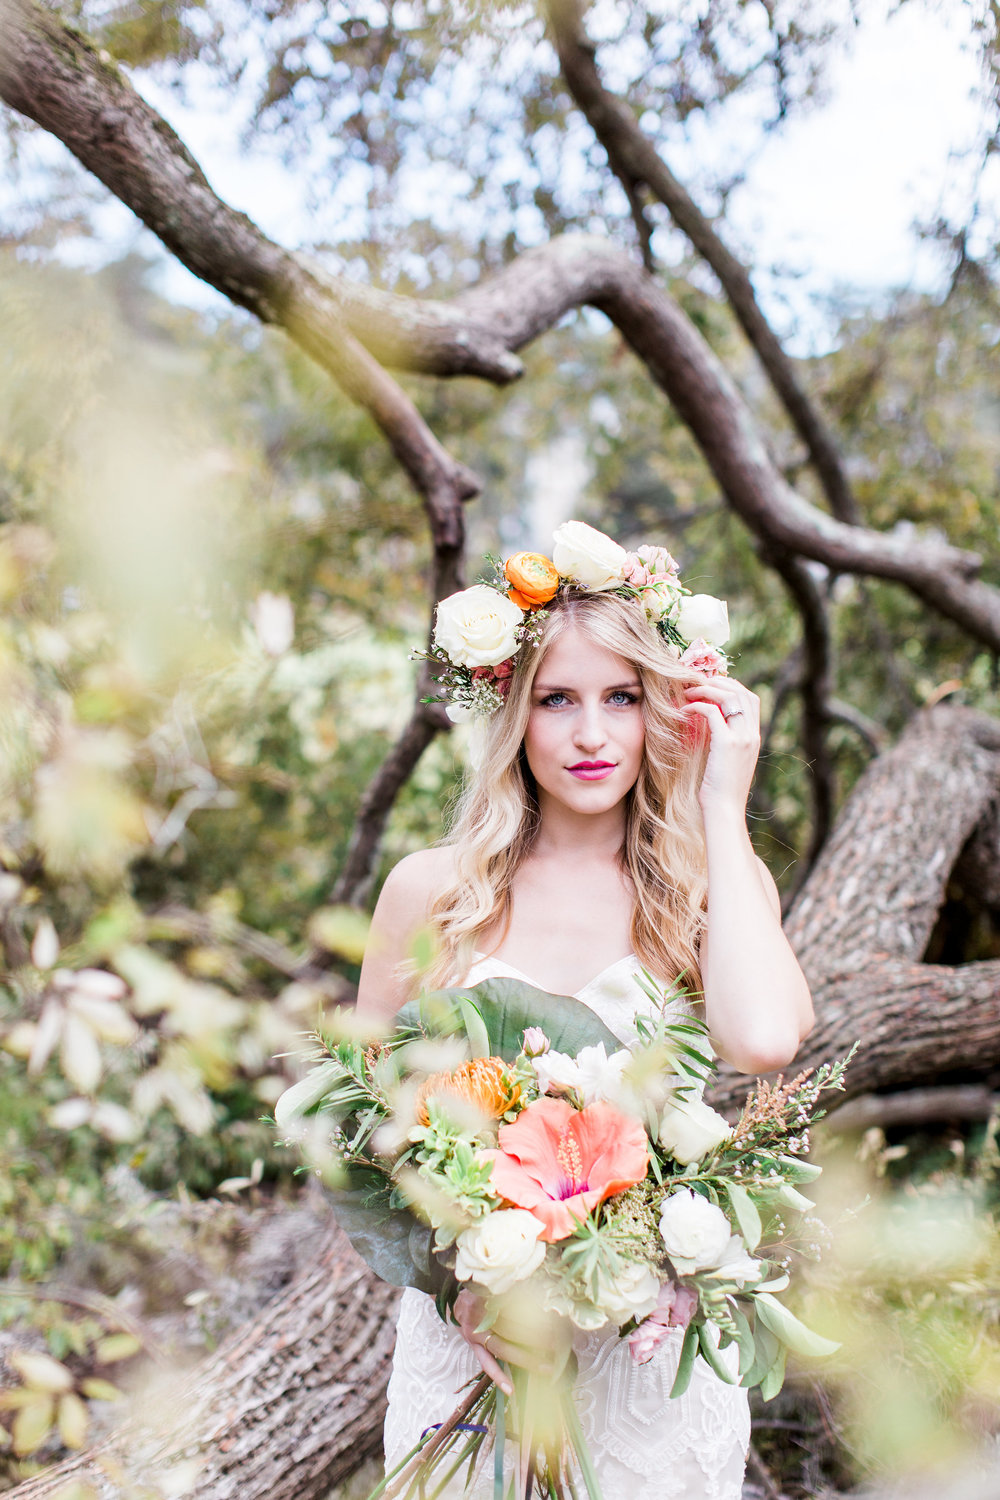 AptBPhoto_IvoryBeau_FallenTrees-fredericka-by-maggie-sottero-ivory-and-beau-savannah-wedding-florist-savannah-bridal-boutique-savannah-wedding-planner-savannah-event-designer-tropical-bouquet.jpg